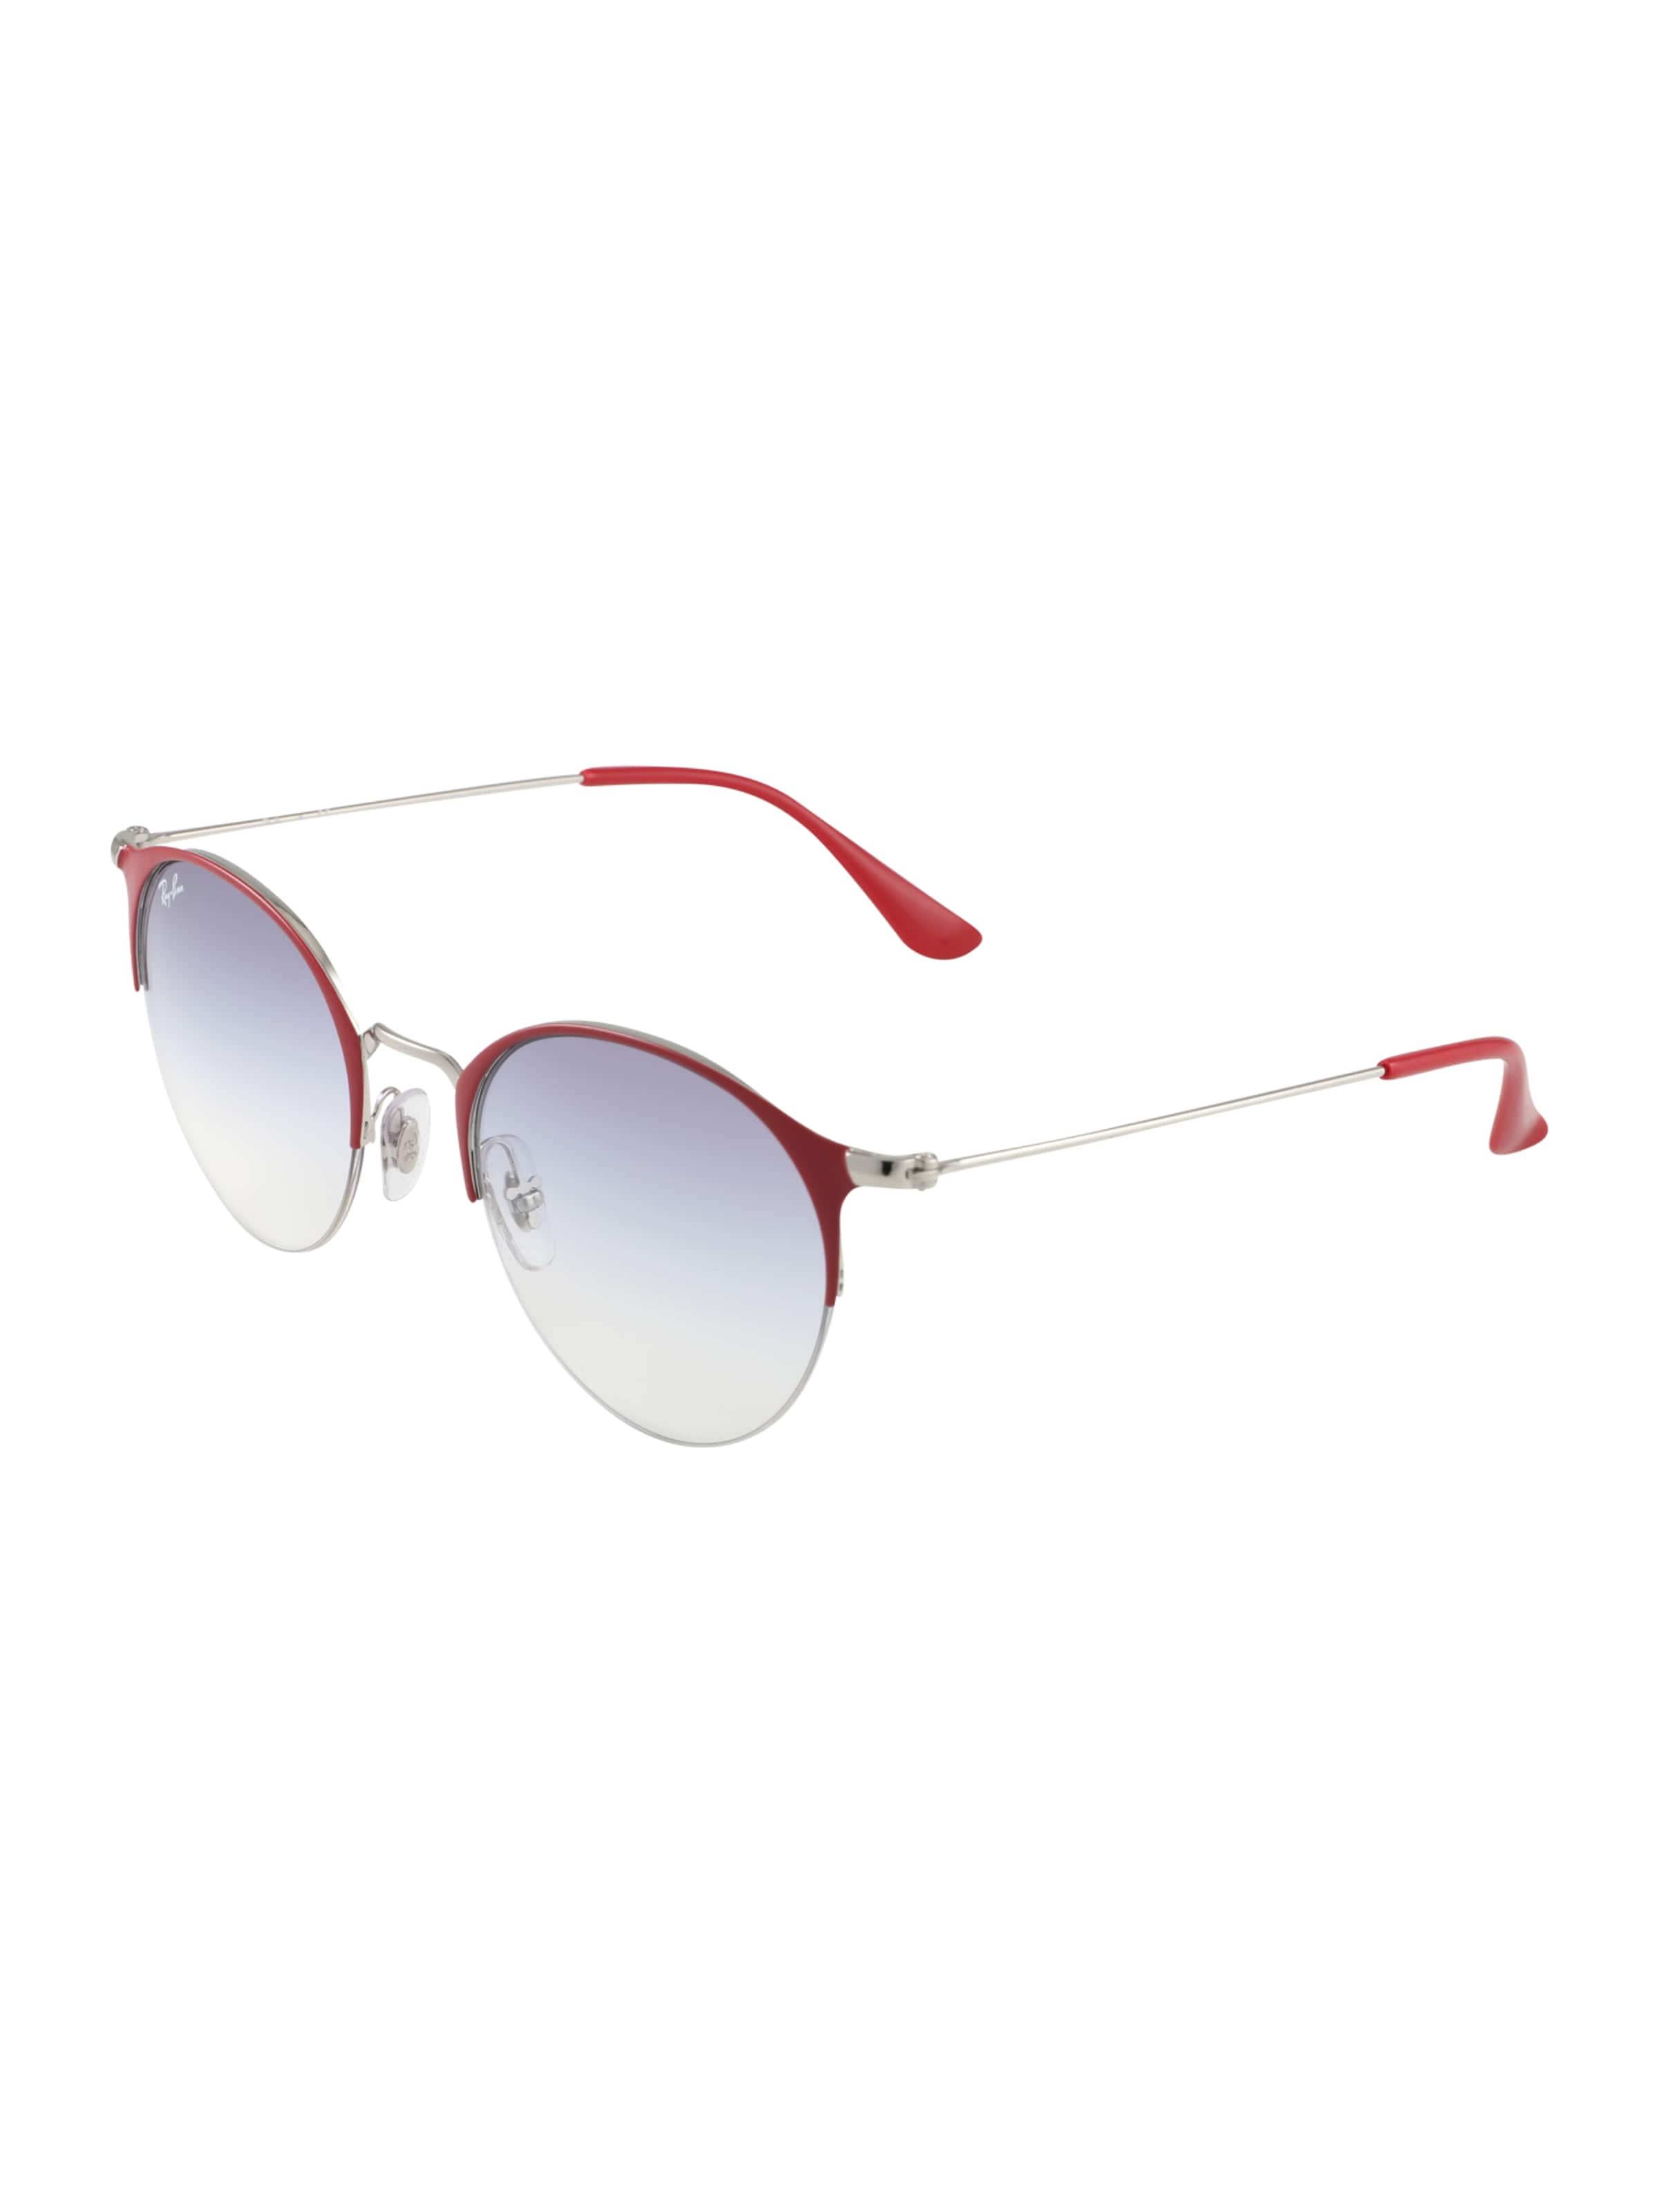 BlueBordeaux Ray ban Zonnebril In Smoky y08mONPvnw